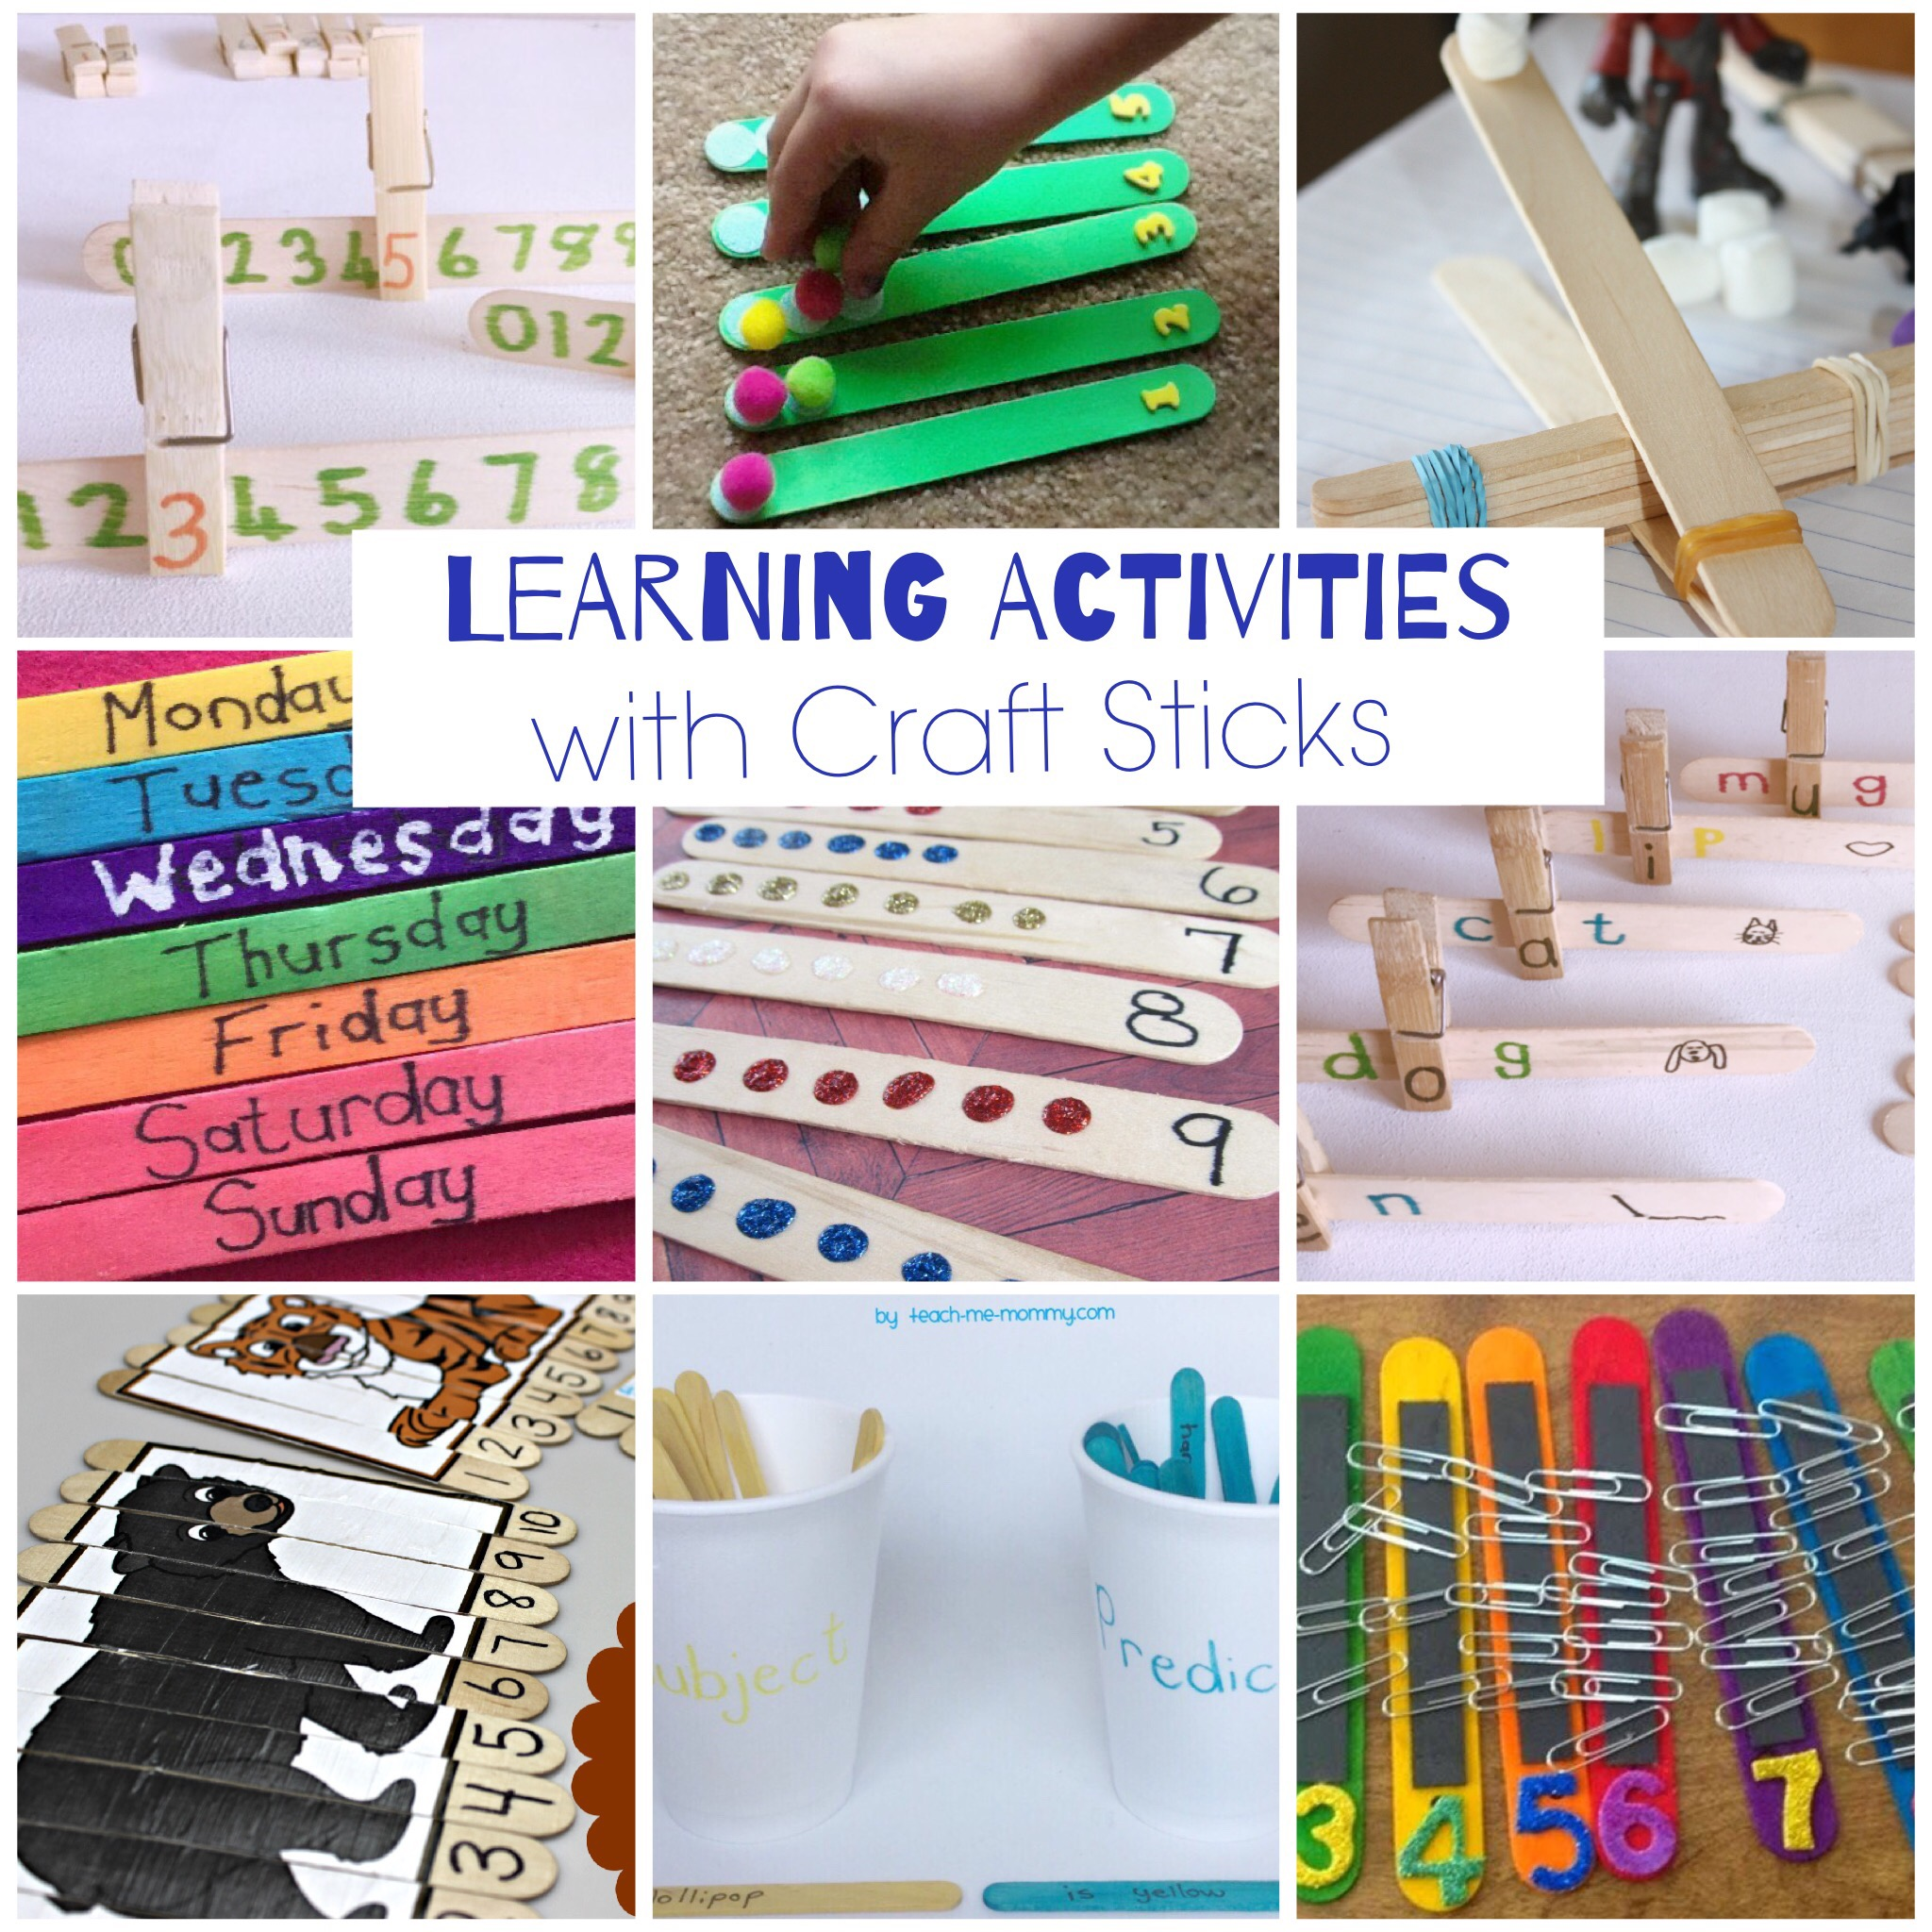 Craft sticks Activities